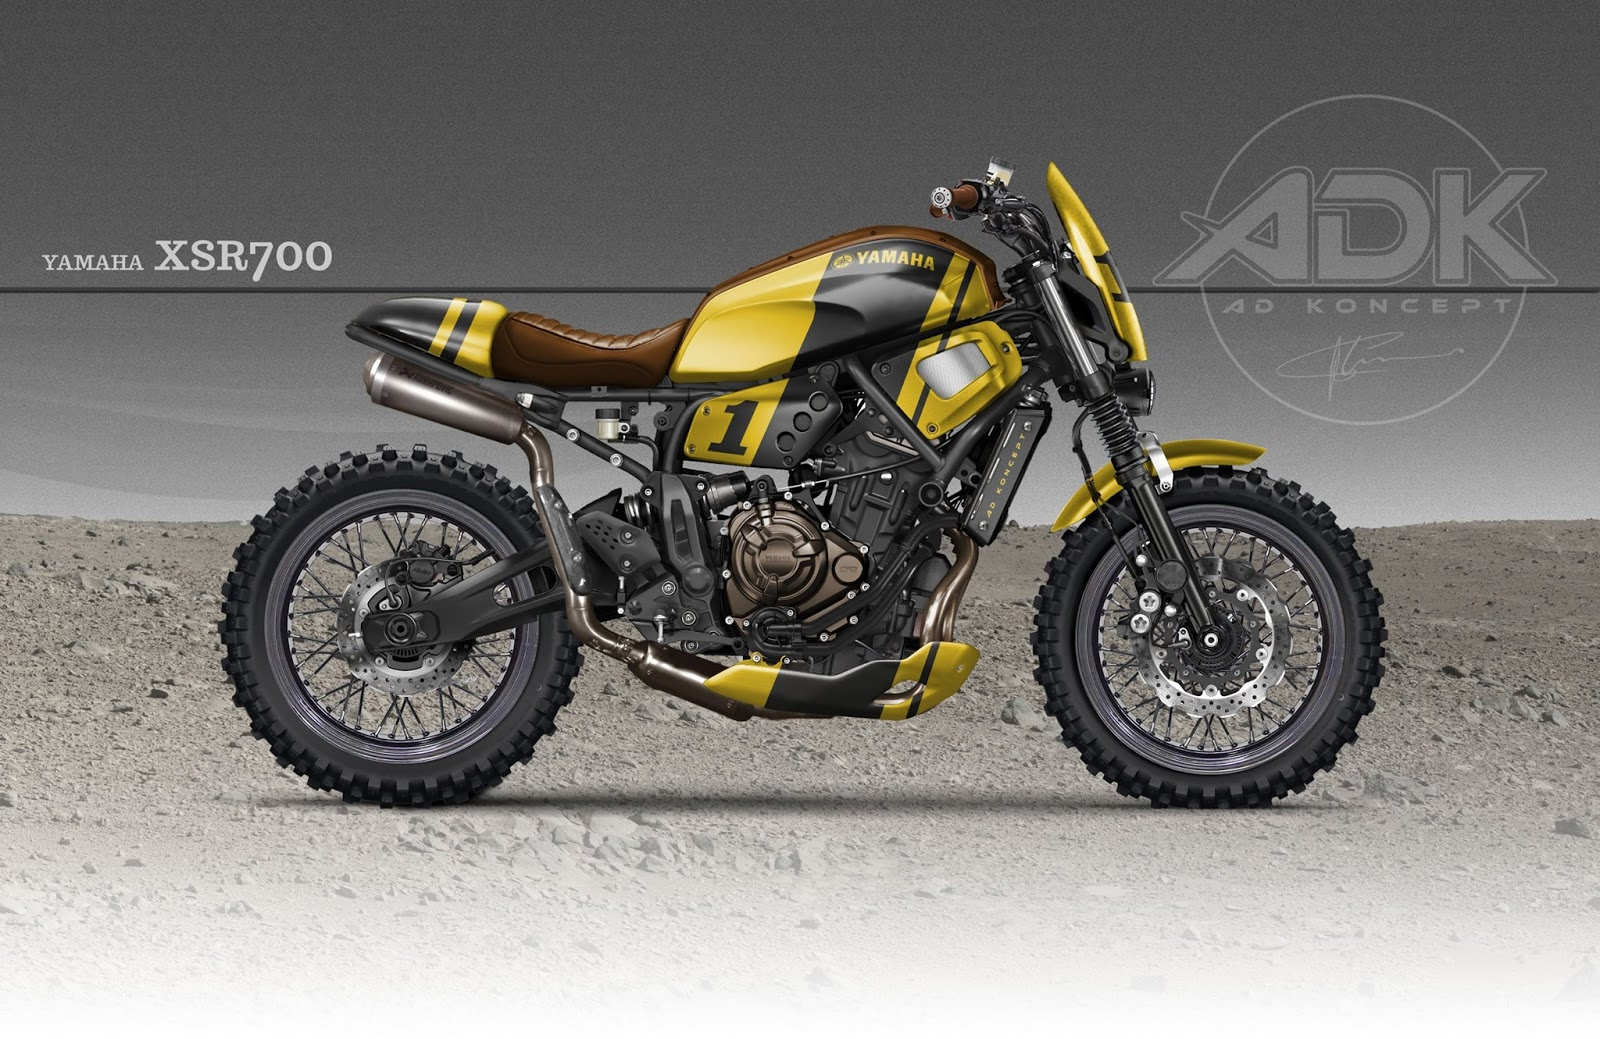 racing caf design corner yamaha xsr by ad koncept. Black Bedroom Furniture Sets. Home Design Ideas